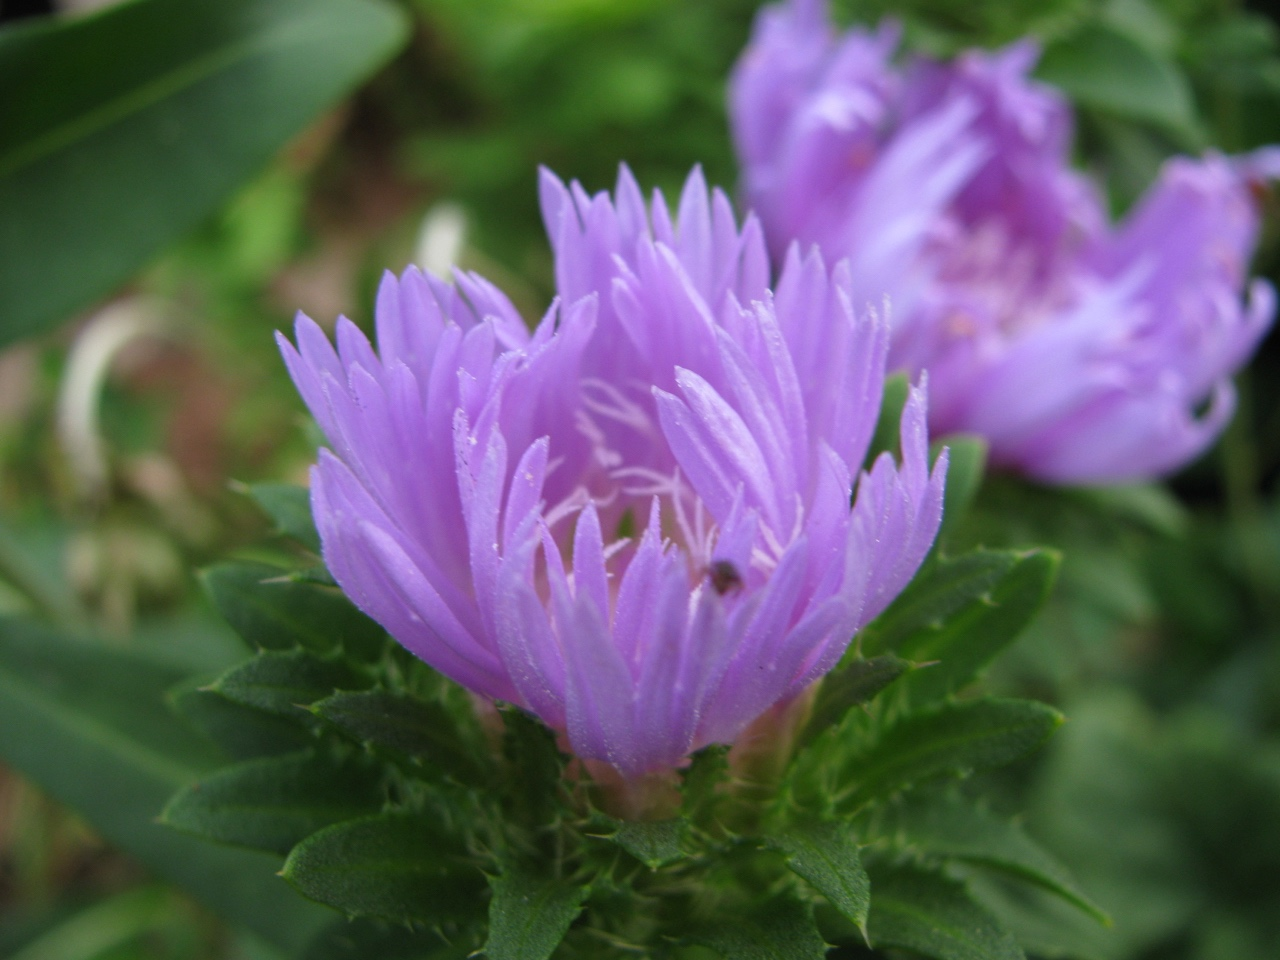 The Scientific Name is Stokesia laevis. You will likely hear them called Stokes Aster, Stokesia, Blue Stokesia, Stokes's Aster, Cornflower Aster. This picture shows the Flower head beginning to unfurl of Stokesia laevis